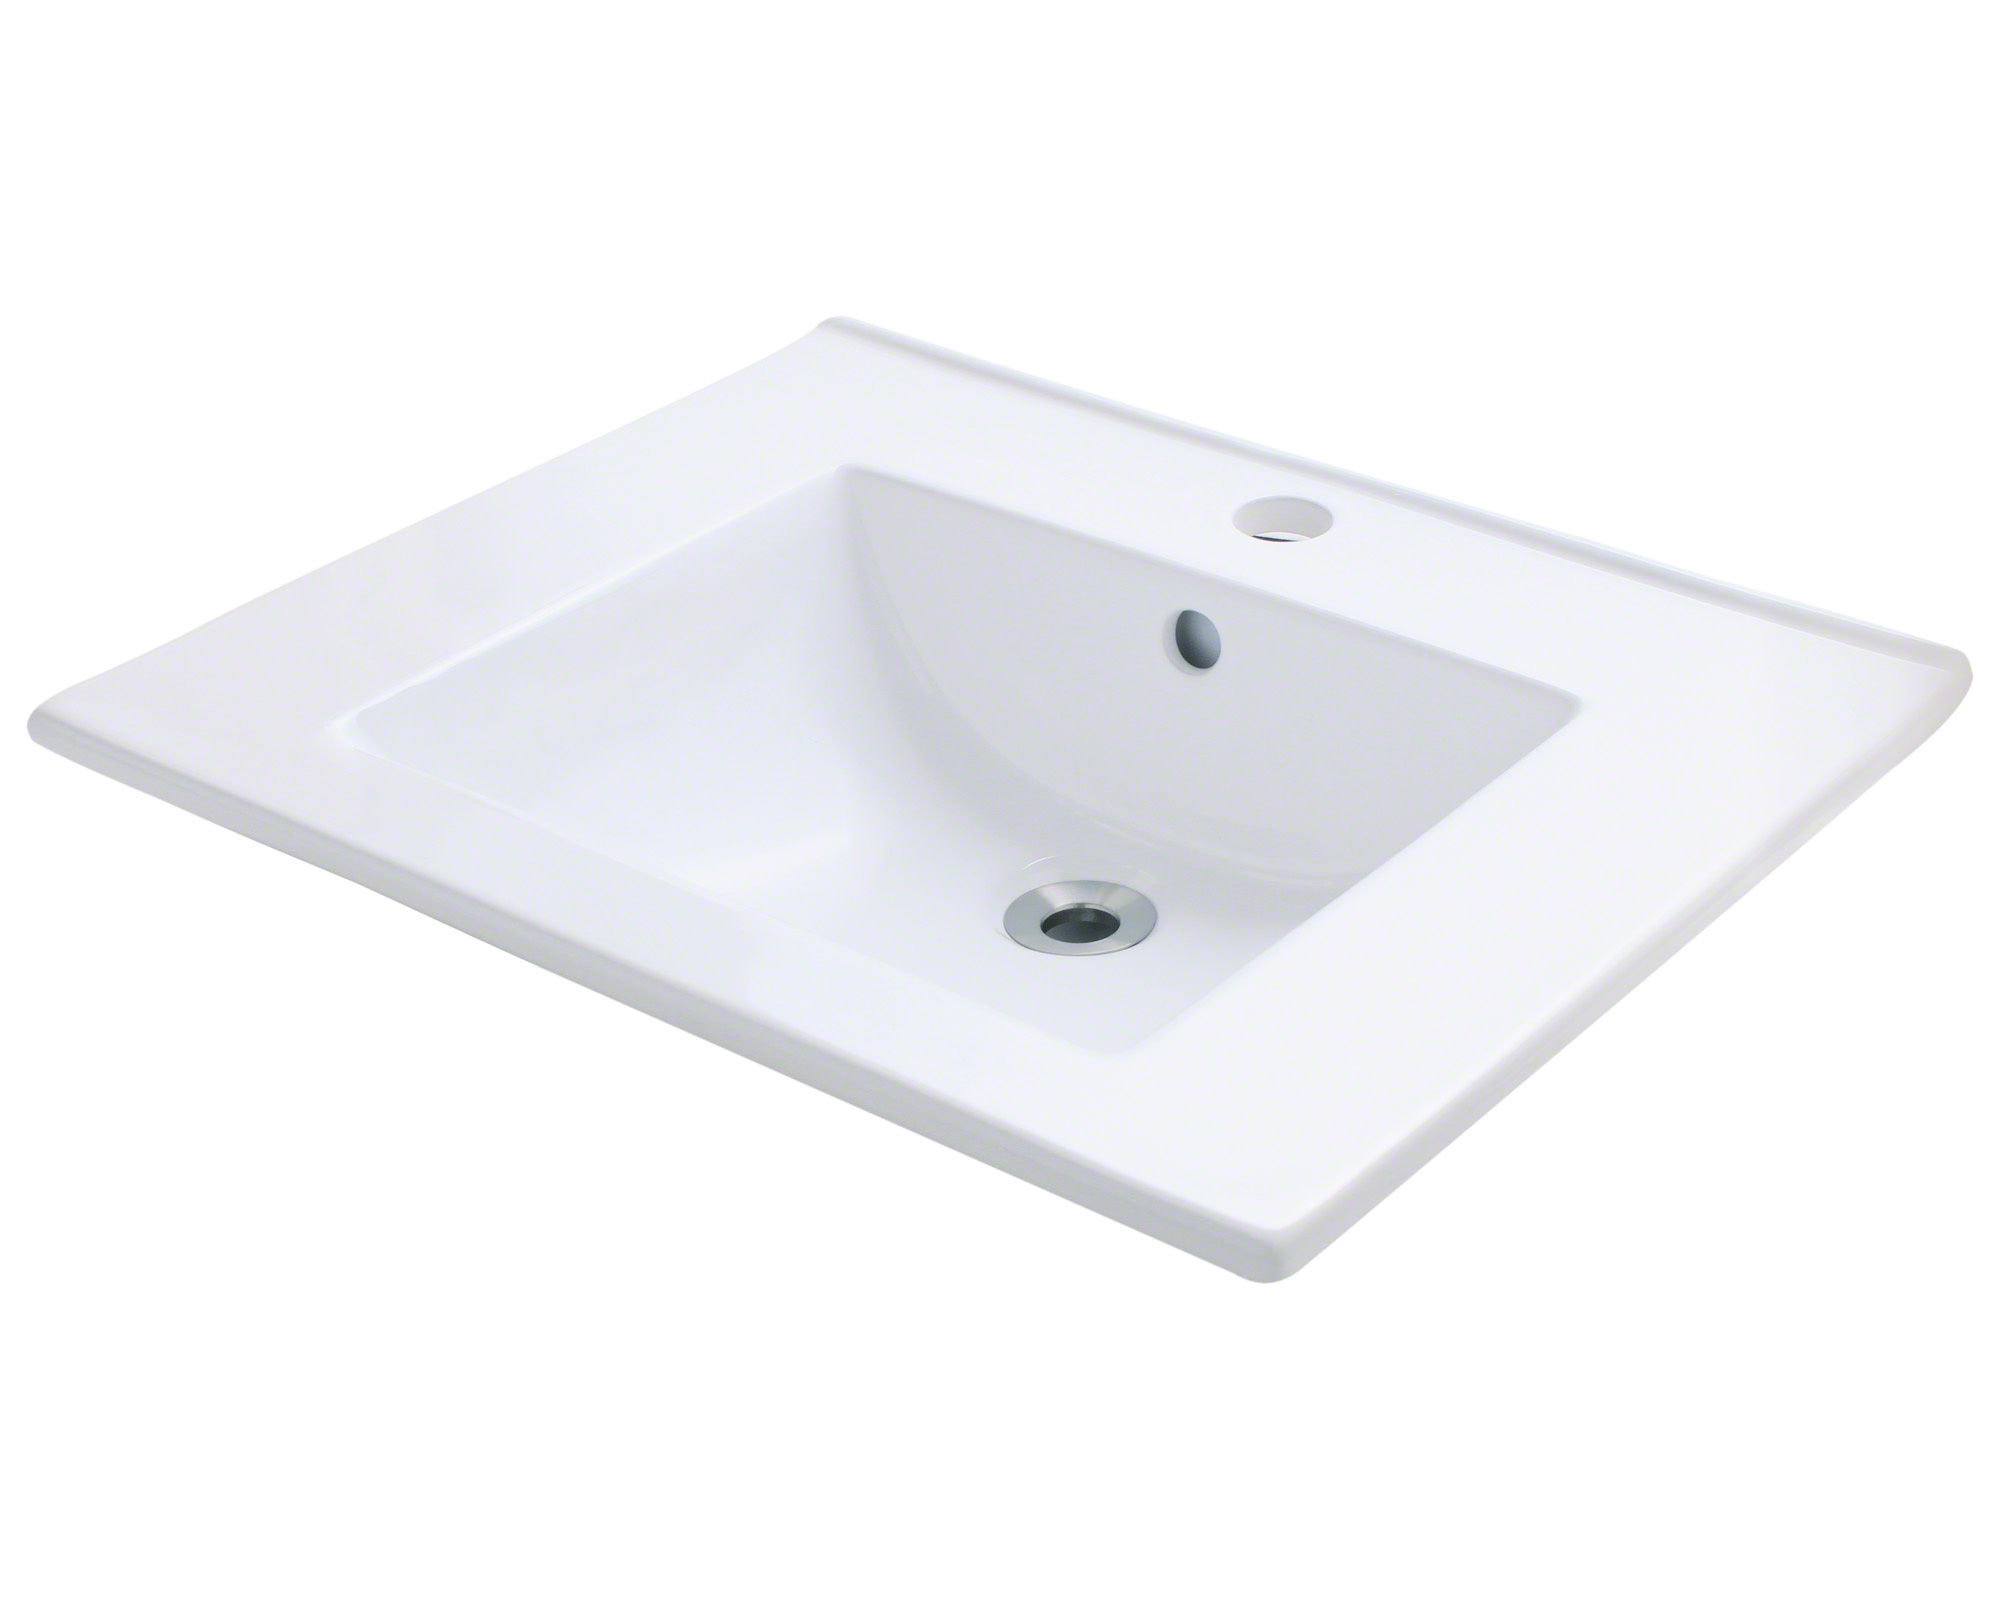 Polaris P013V-w White Porcelain Vessel Sink